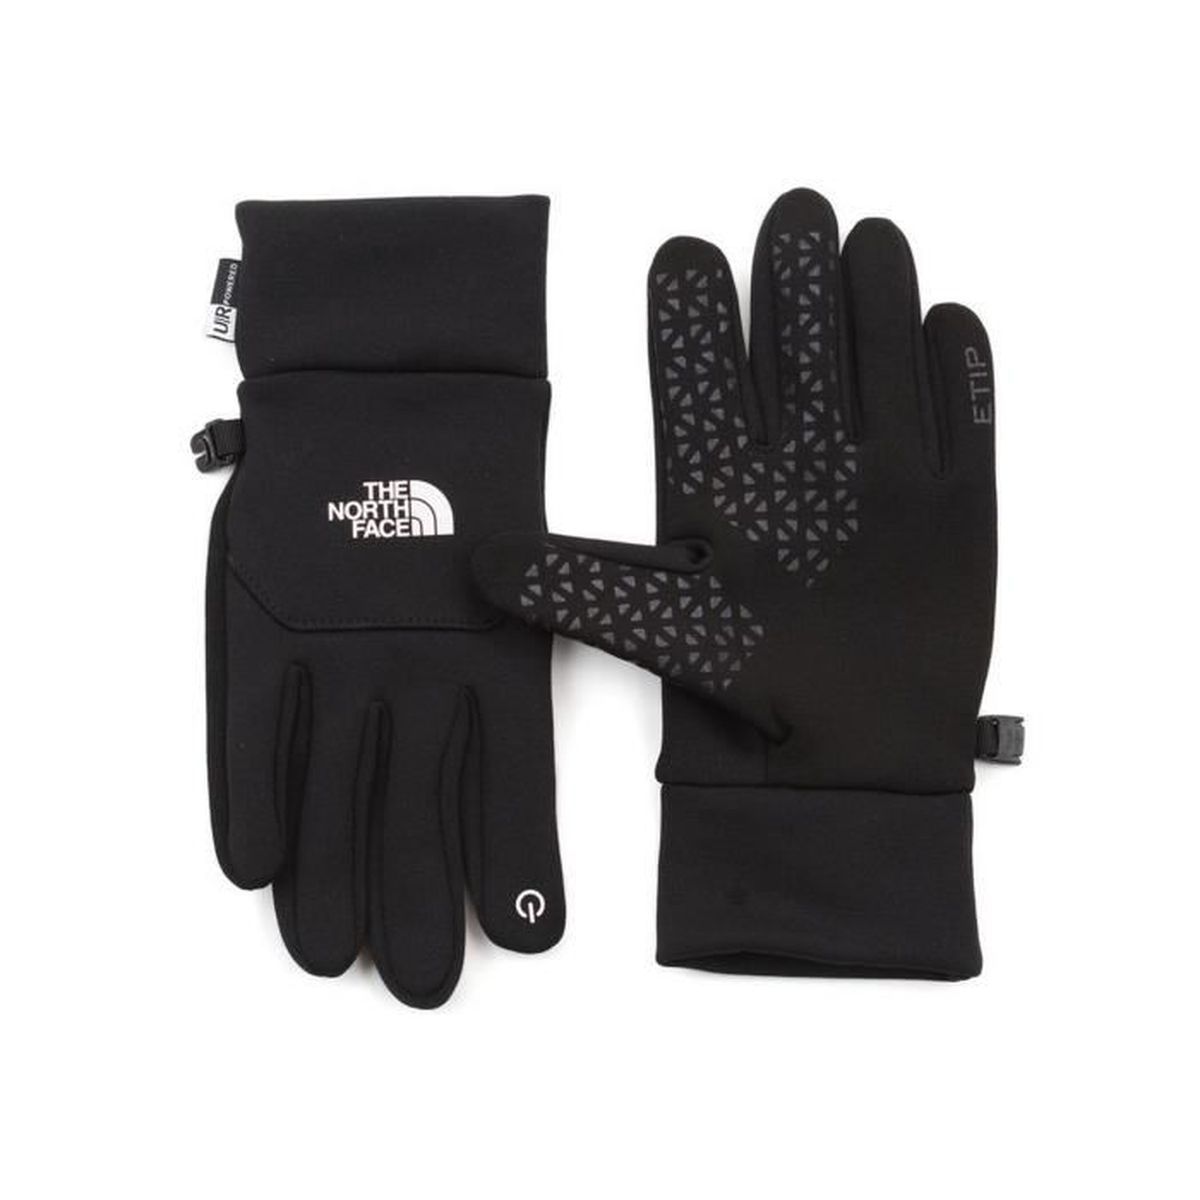 2739d85c66dd9 GANTS THE NORTH FACE XS NOIR - Achat   Vente gant - mitaine ...